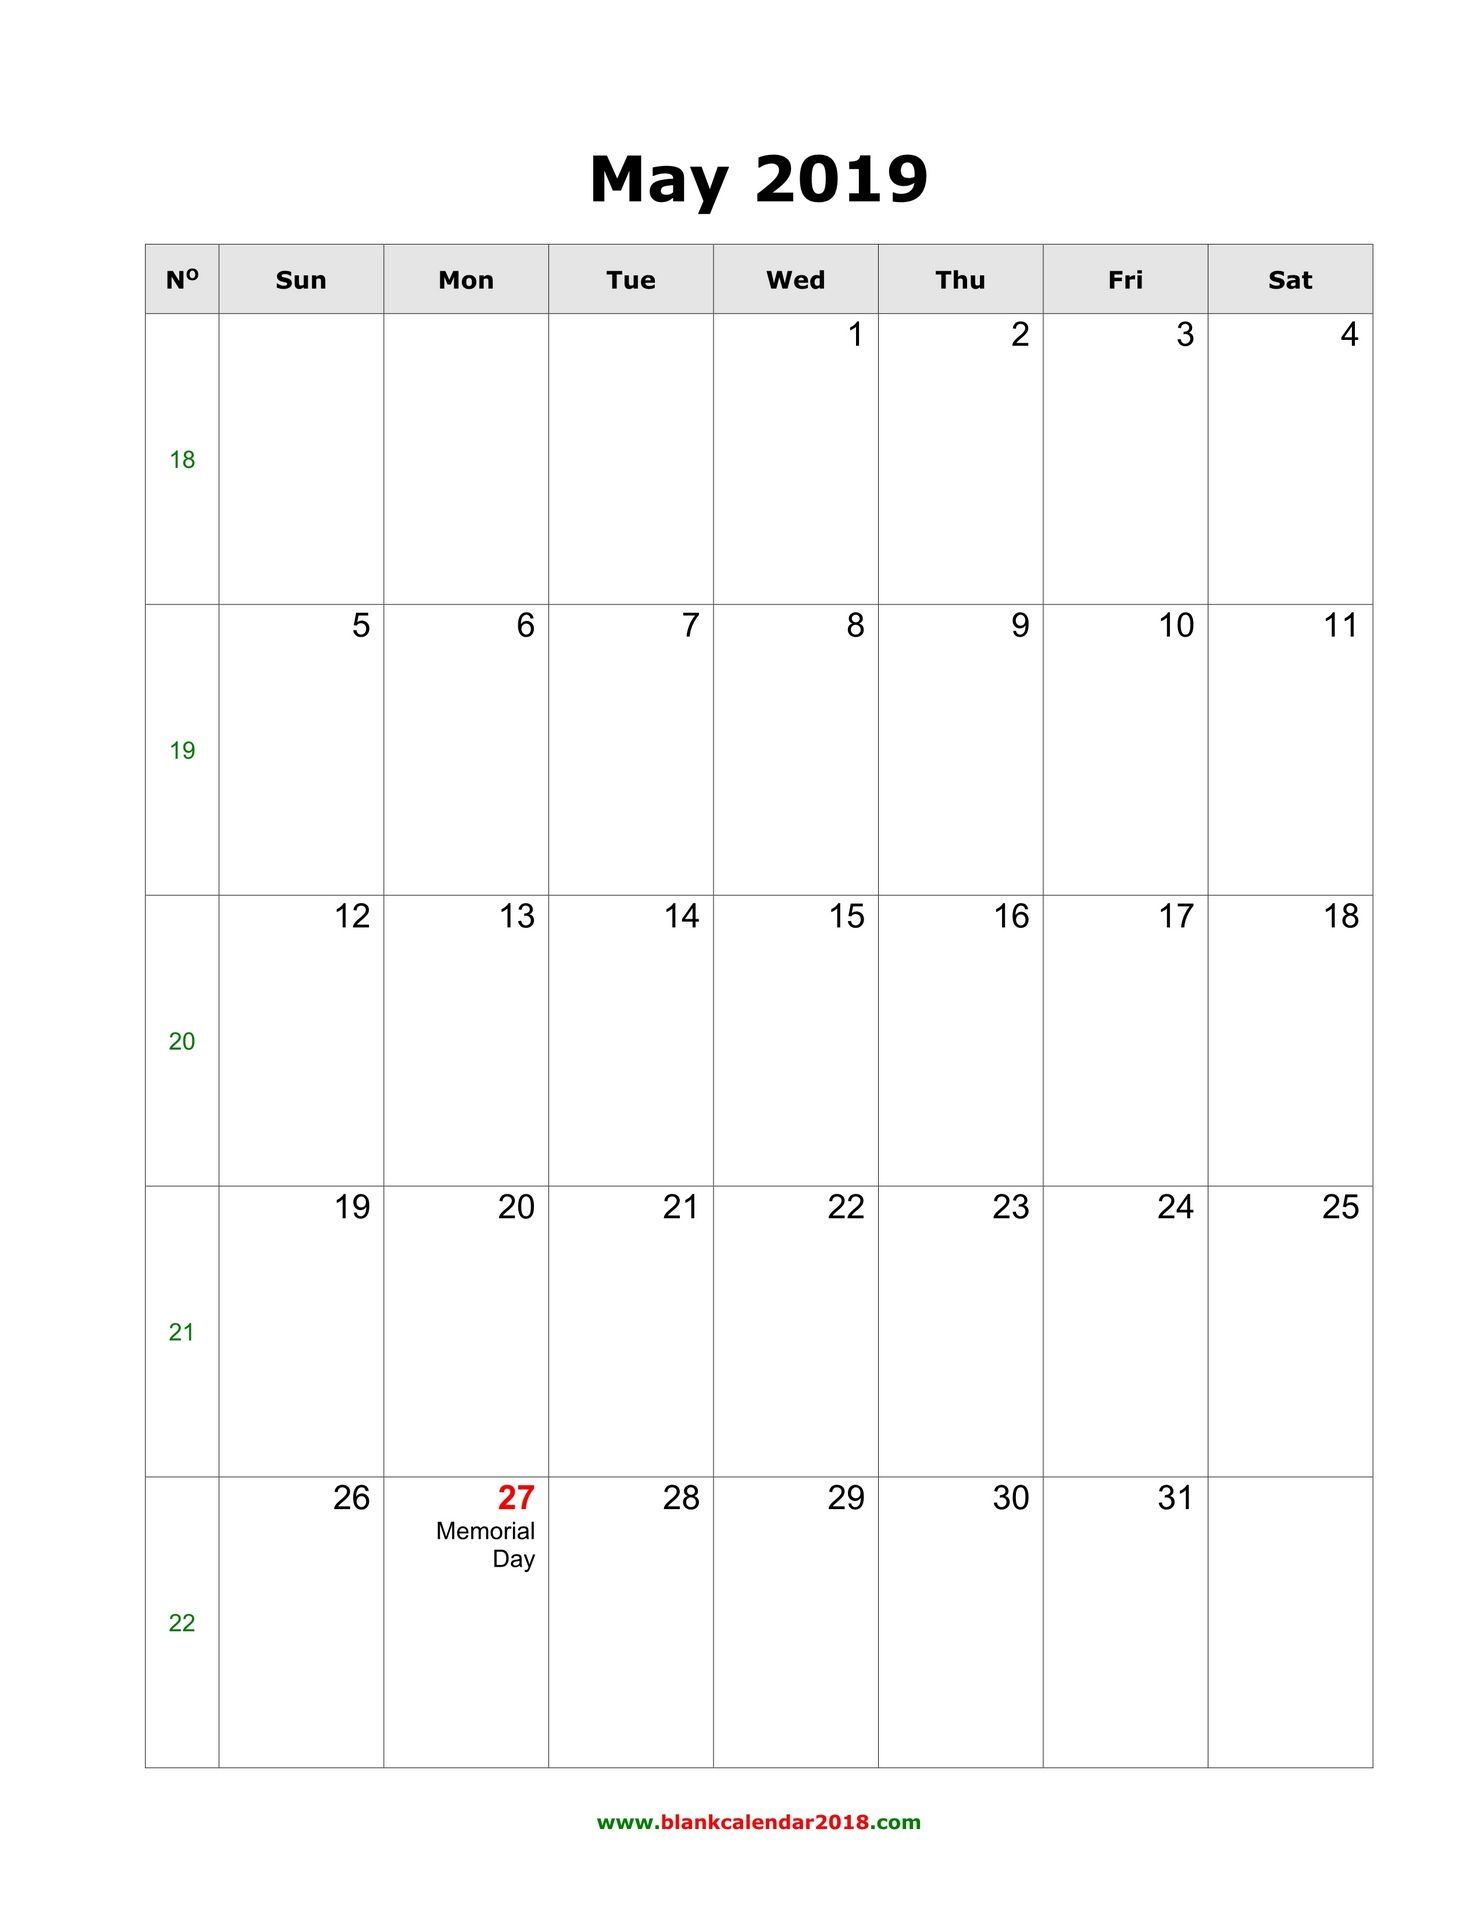 May 2019 Calendar With Holidays Philippines | Excel Calendar